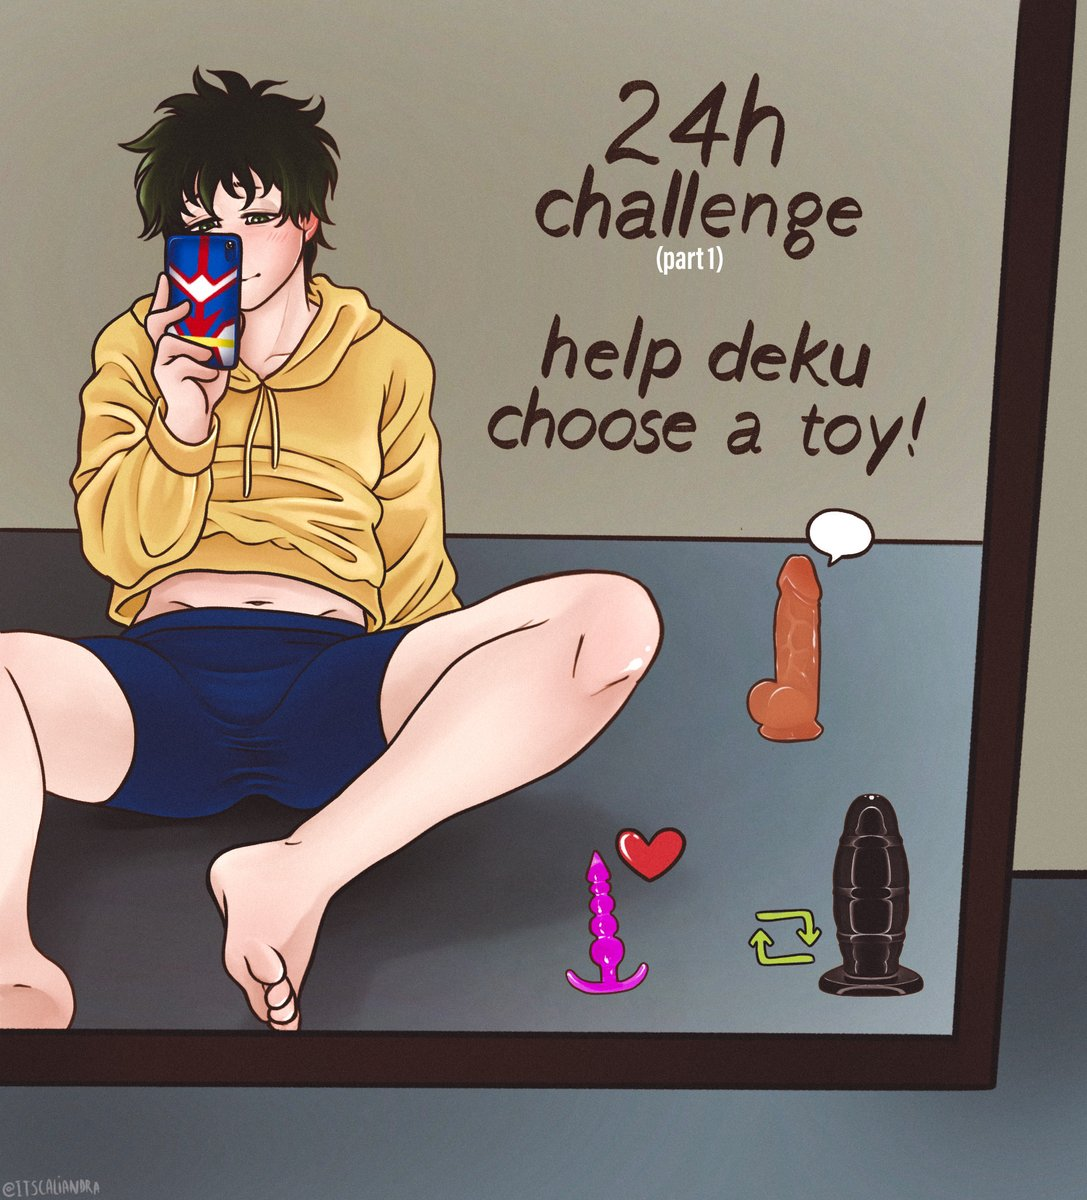 Who wants to help Deku choose his toy... Im starting a little #bottomdeku challenge, and depending on how this goes, there could be part 2 and 3 🤭 If by tomorrow this twees has more... Deku will choose: ❤️ Pink beads toy✨ 🗨️ A decent size dildo✨ 🔄 A big size dildo✨ #nsfw